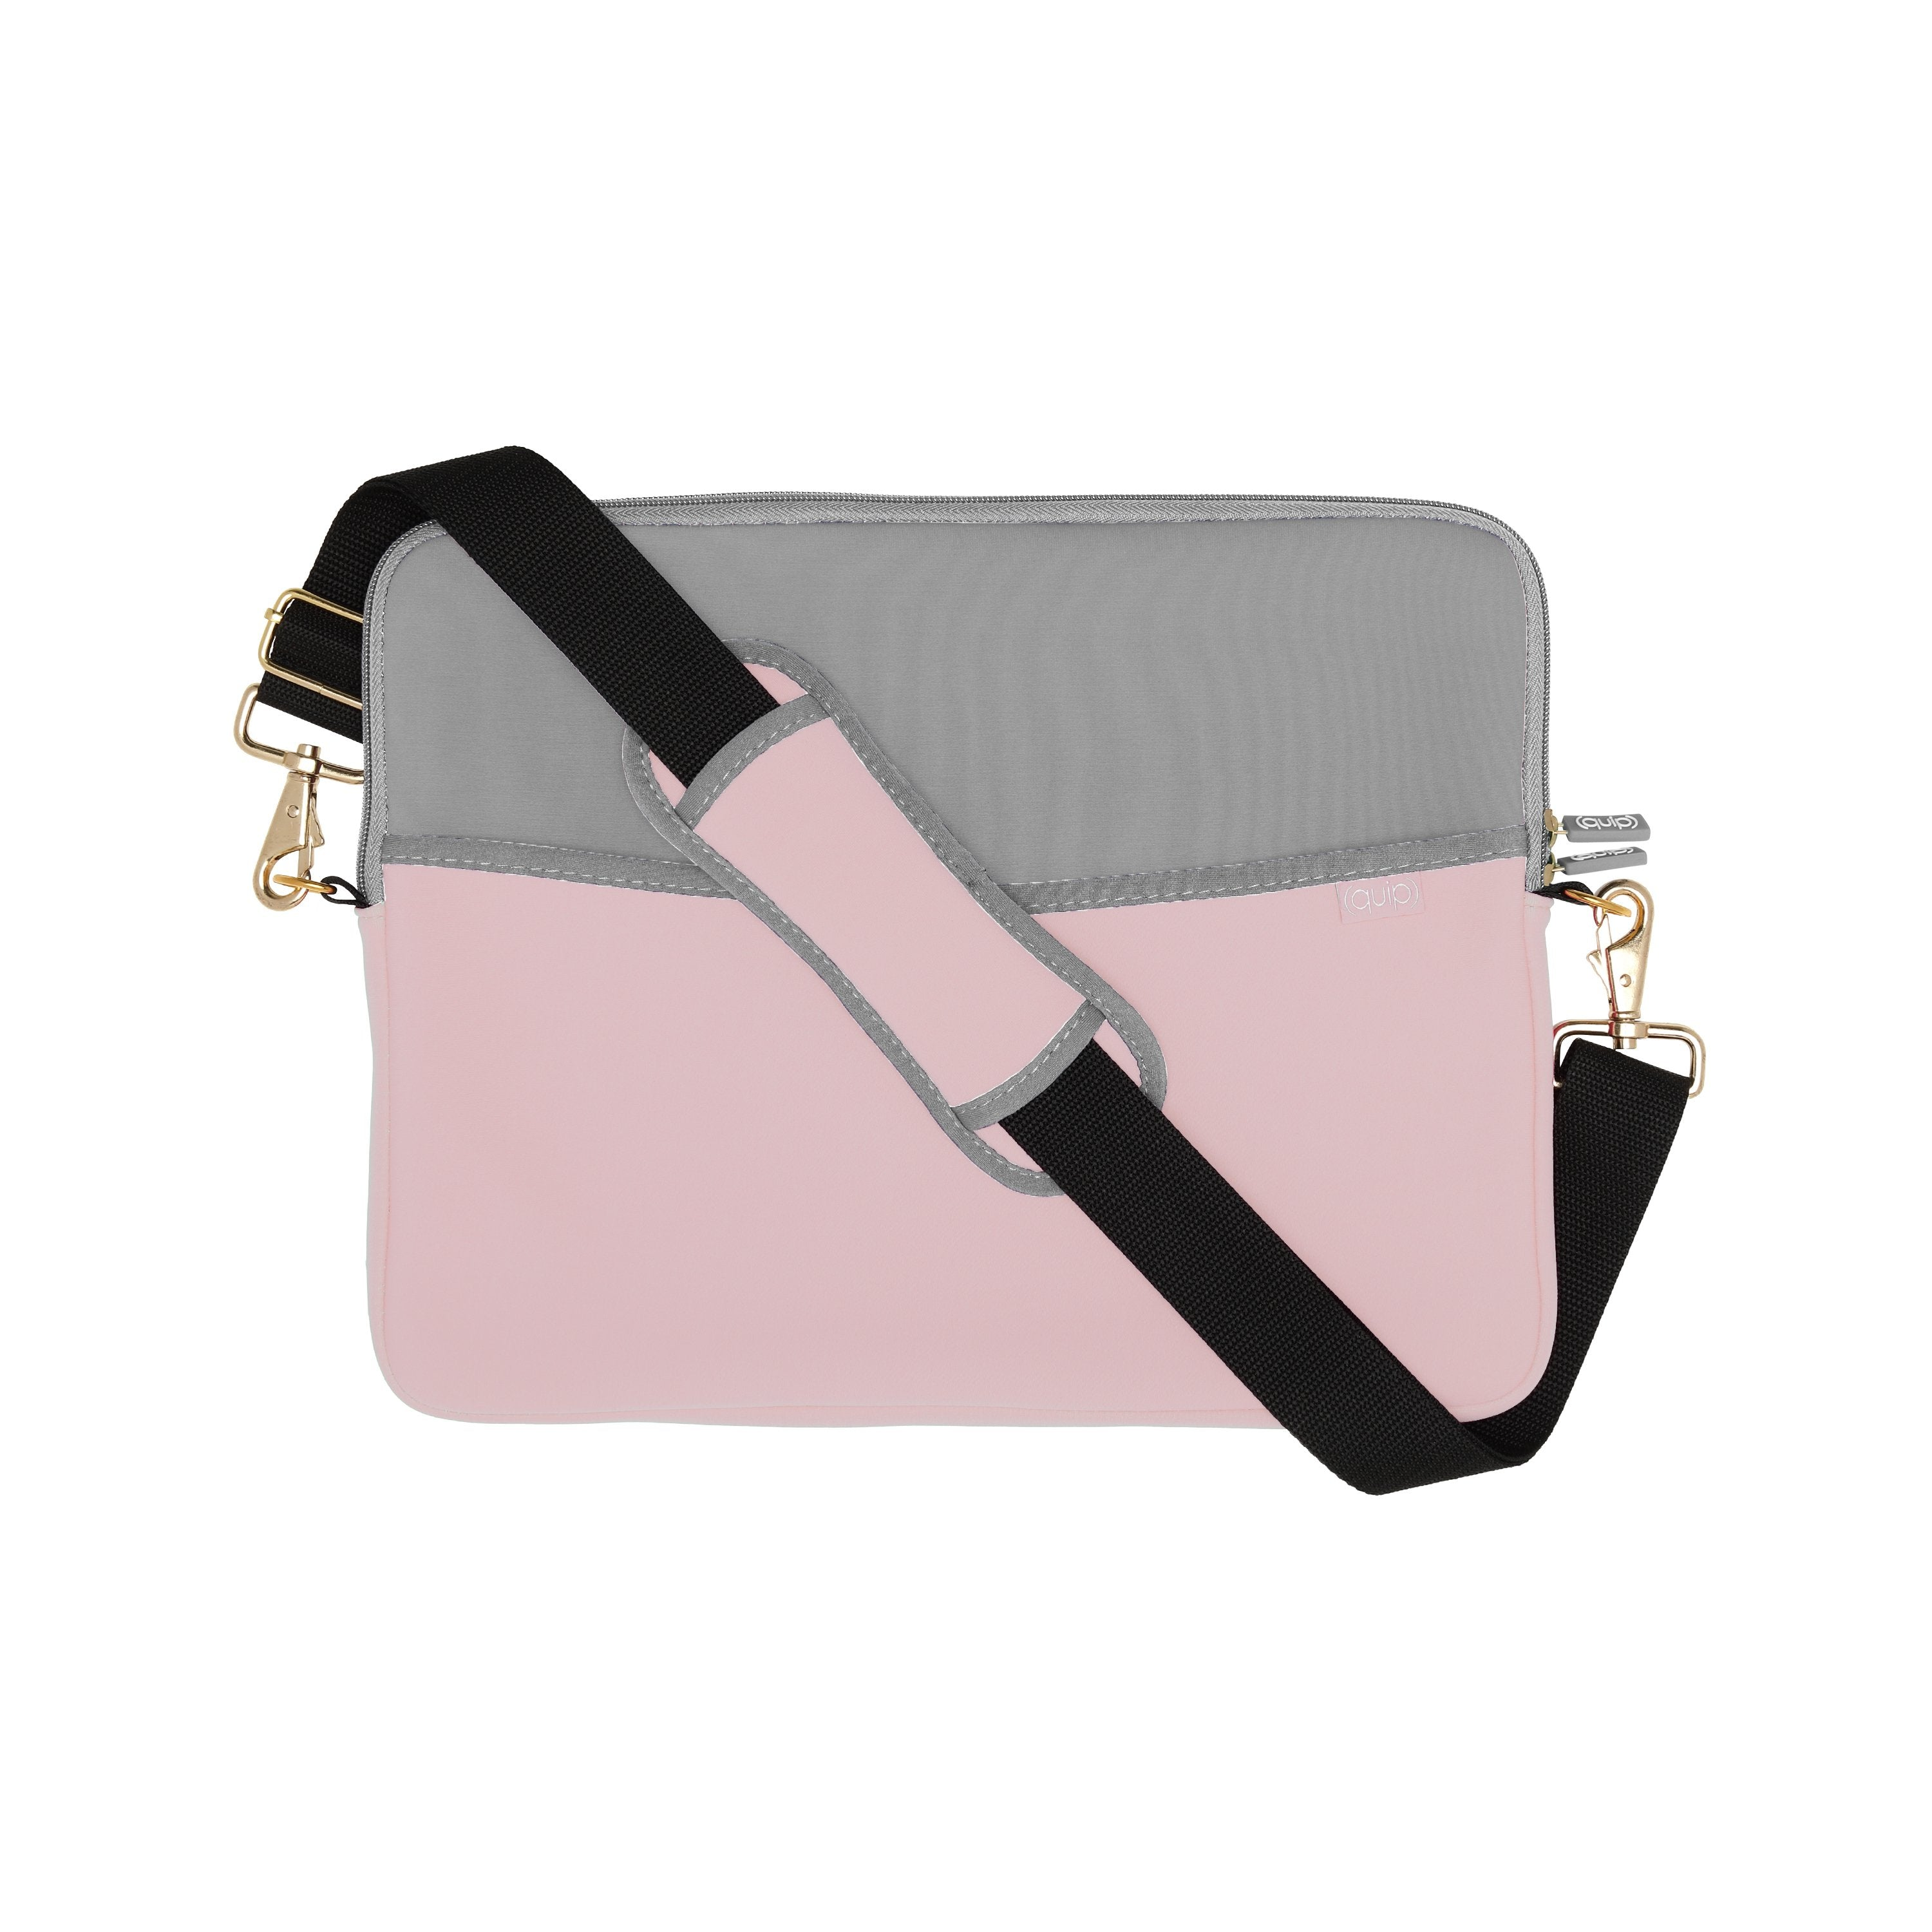 Blush Small Laptop Bag